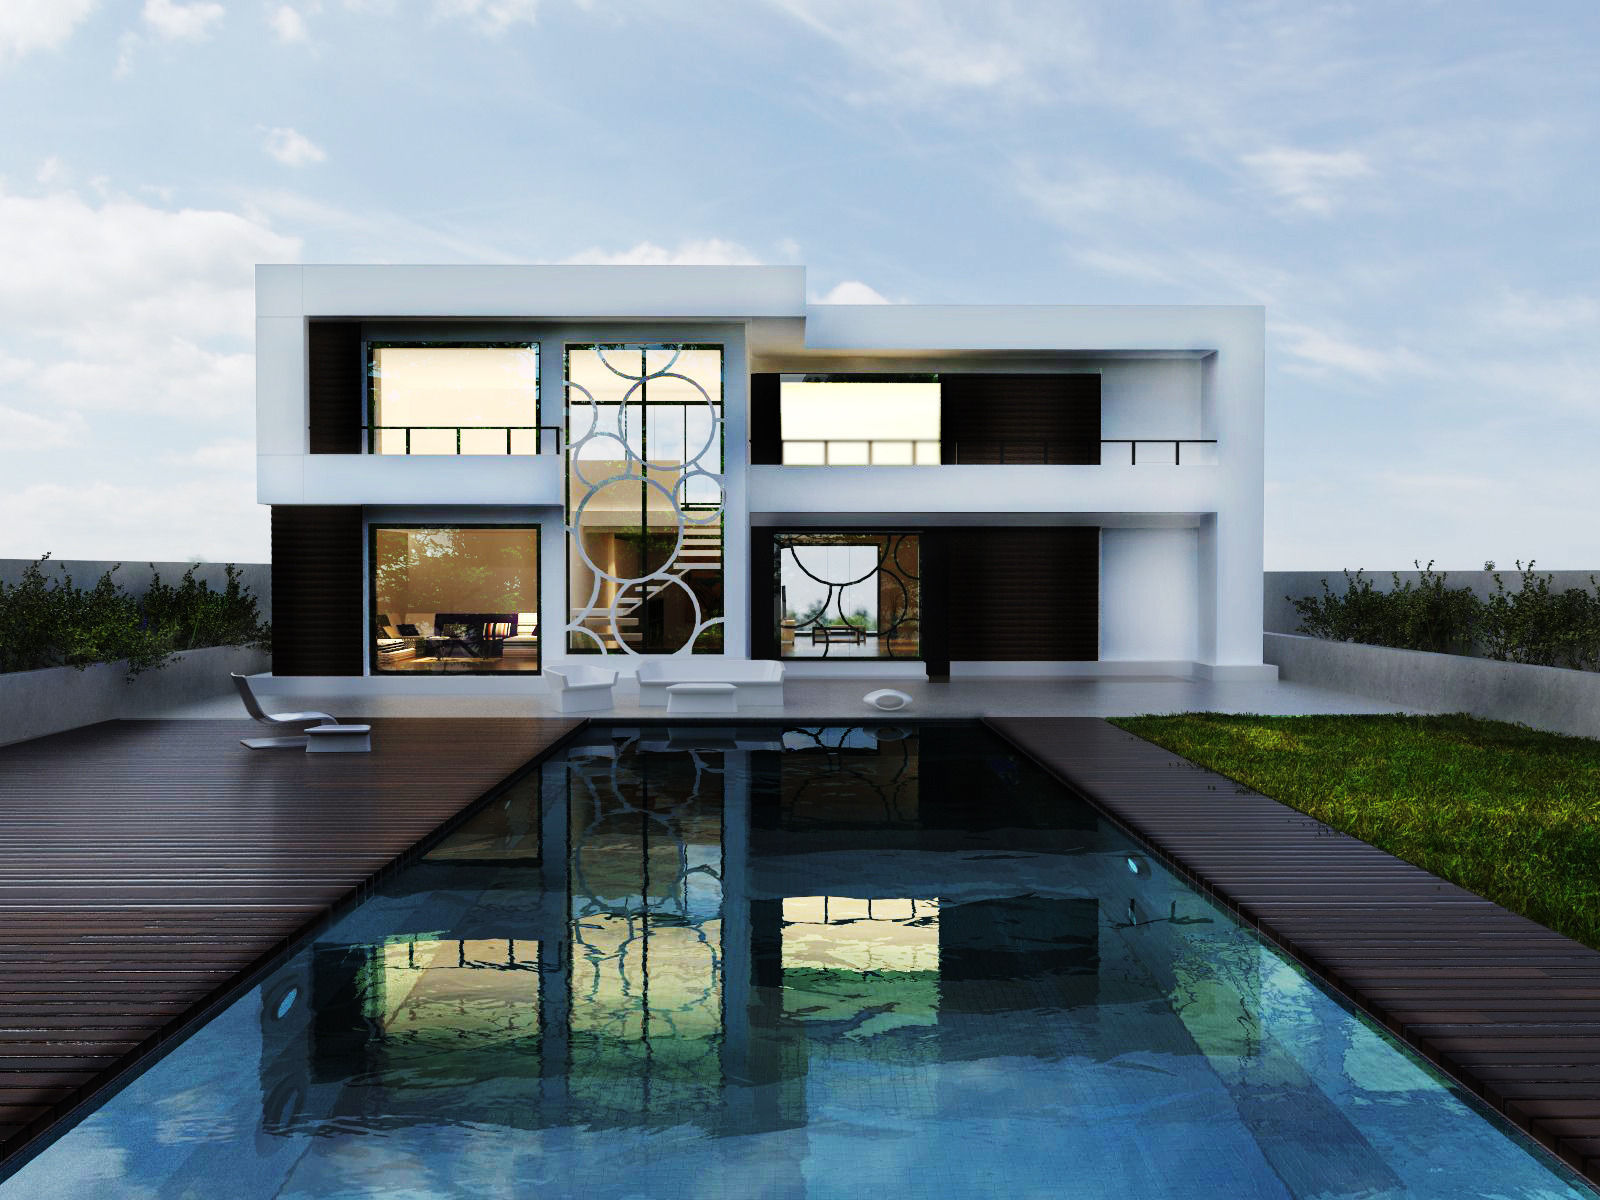 Modern house 3d model free cgtrader for Home 3d